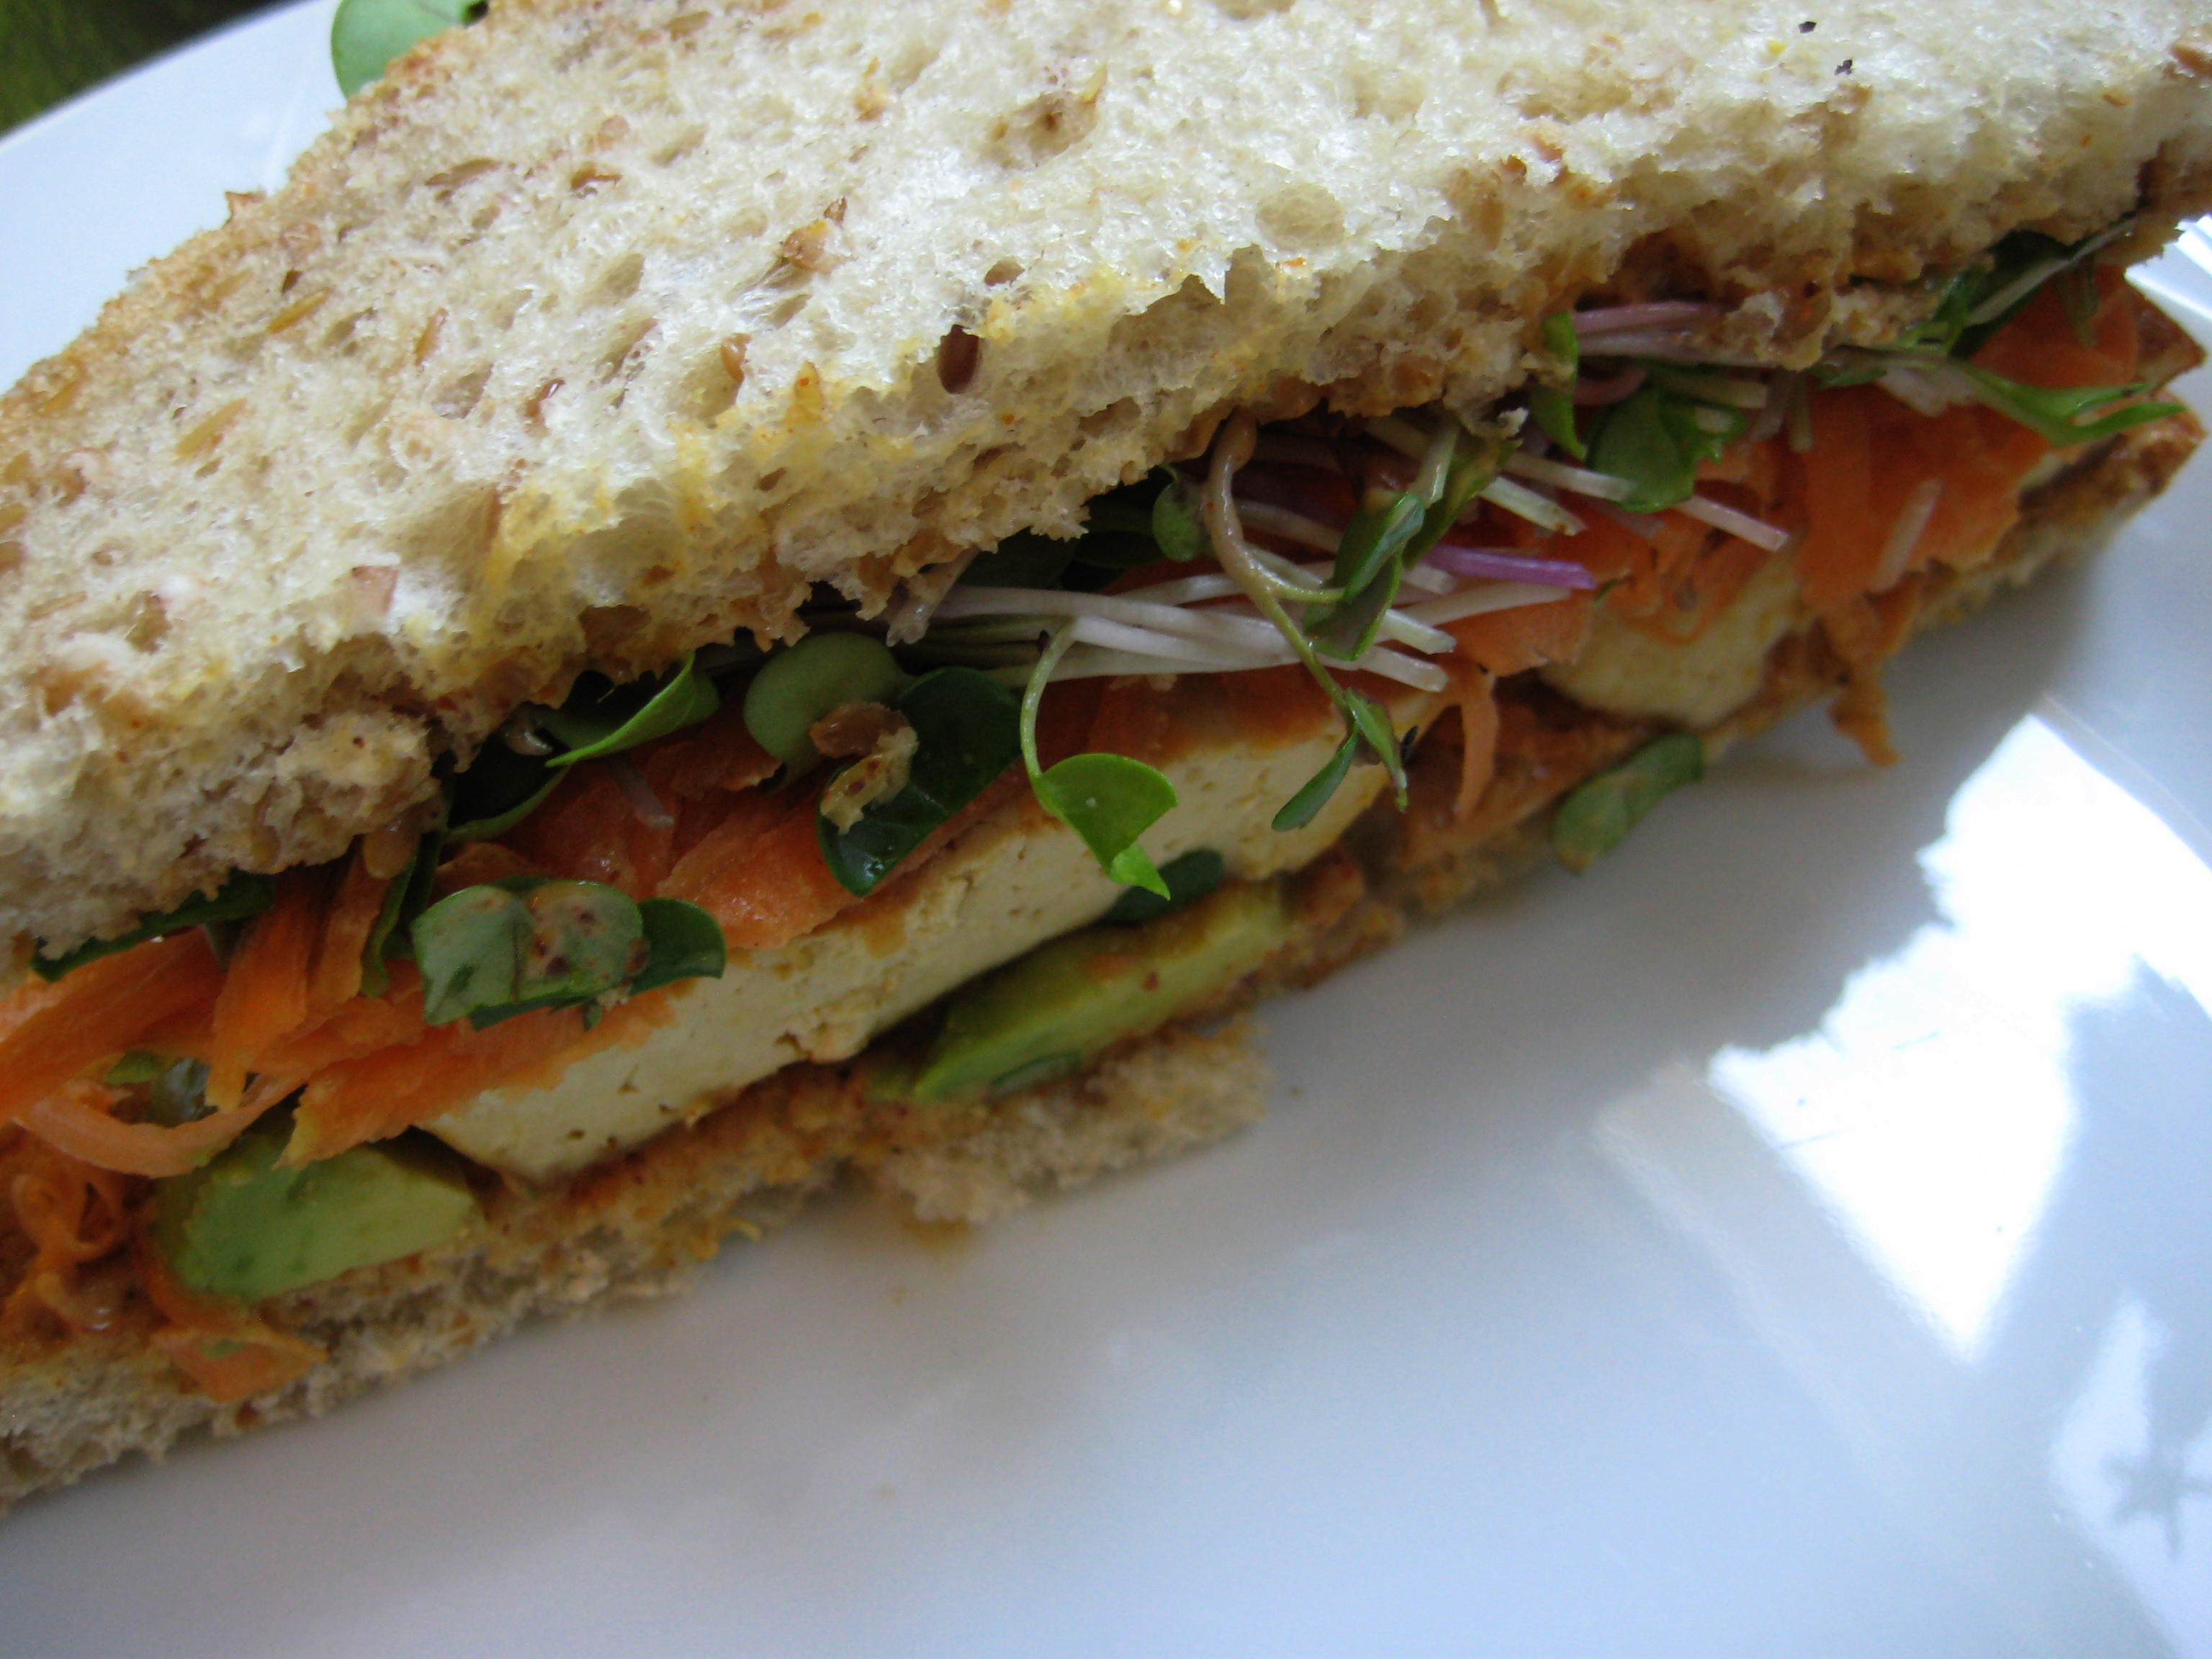 Spicy Avocado Sandwich | food.lainehardy.com